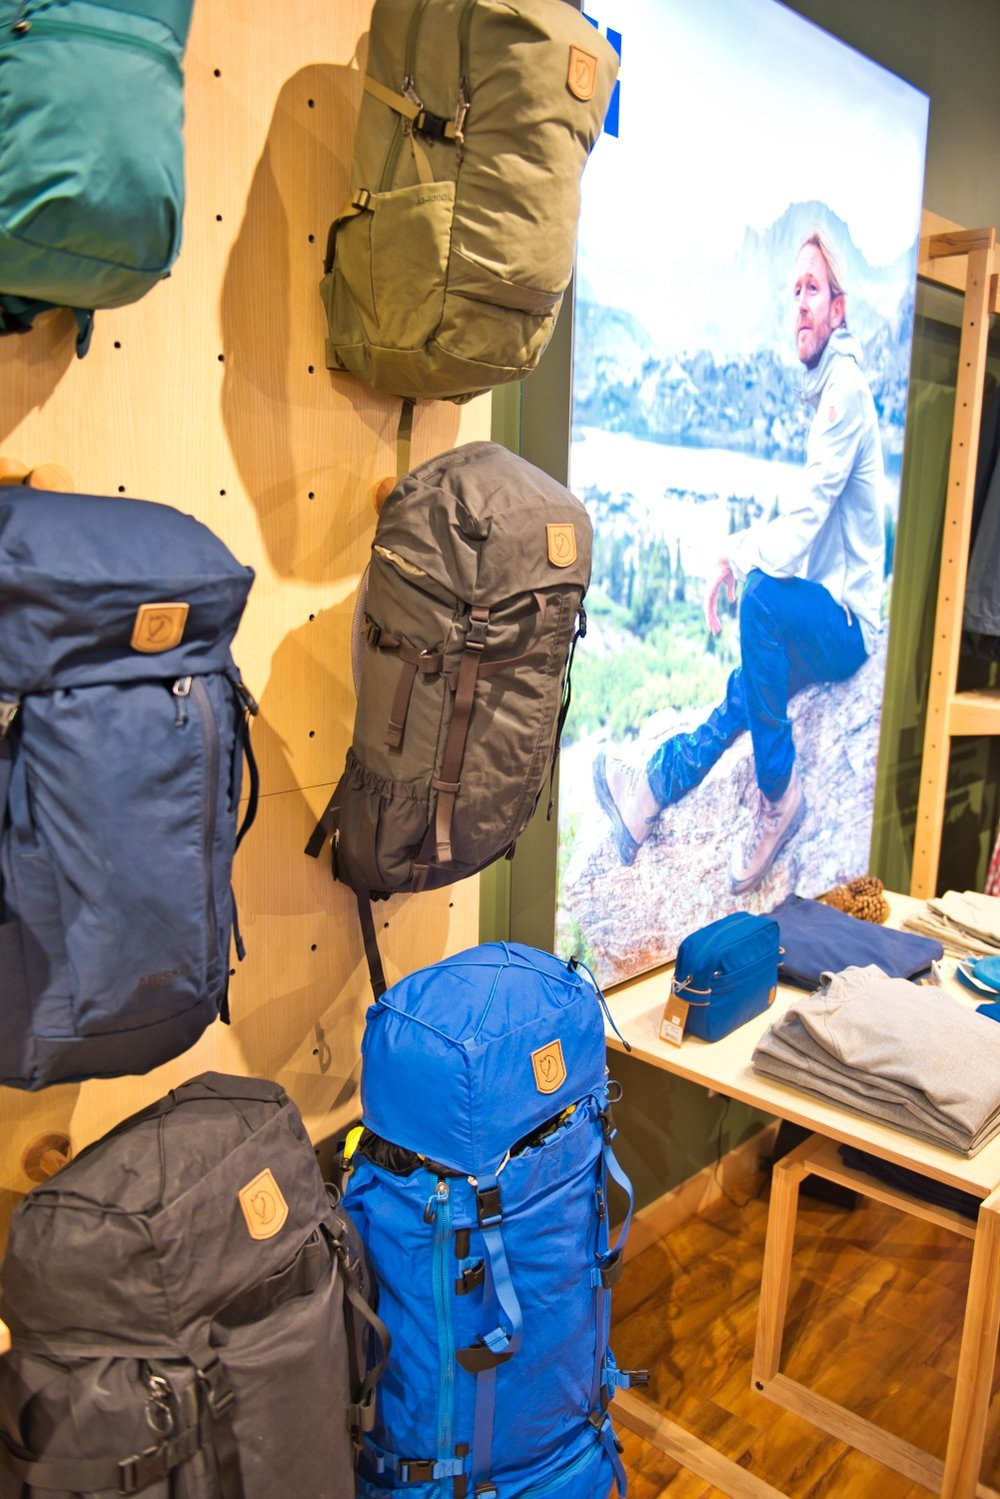 FjallravenBackpacks.jpeg